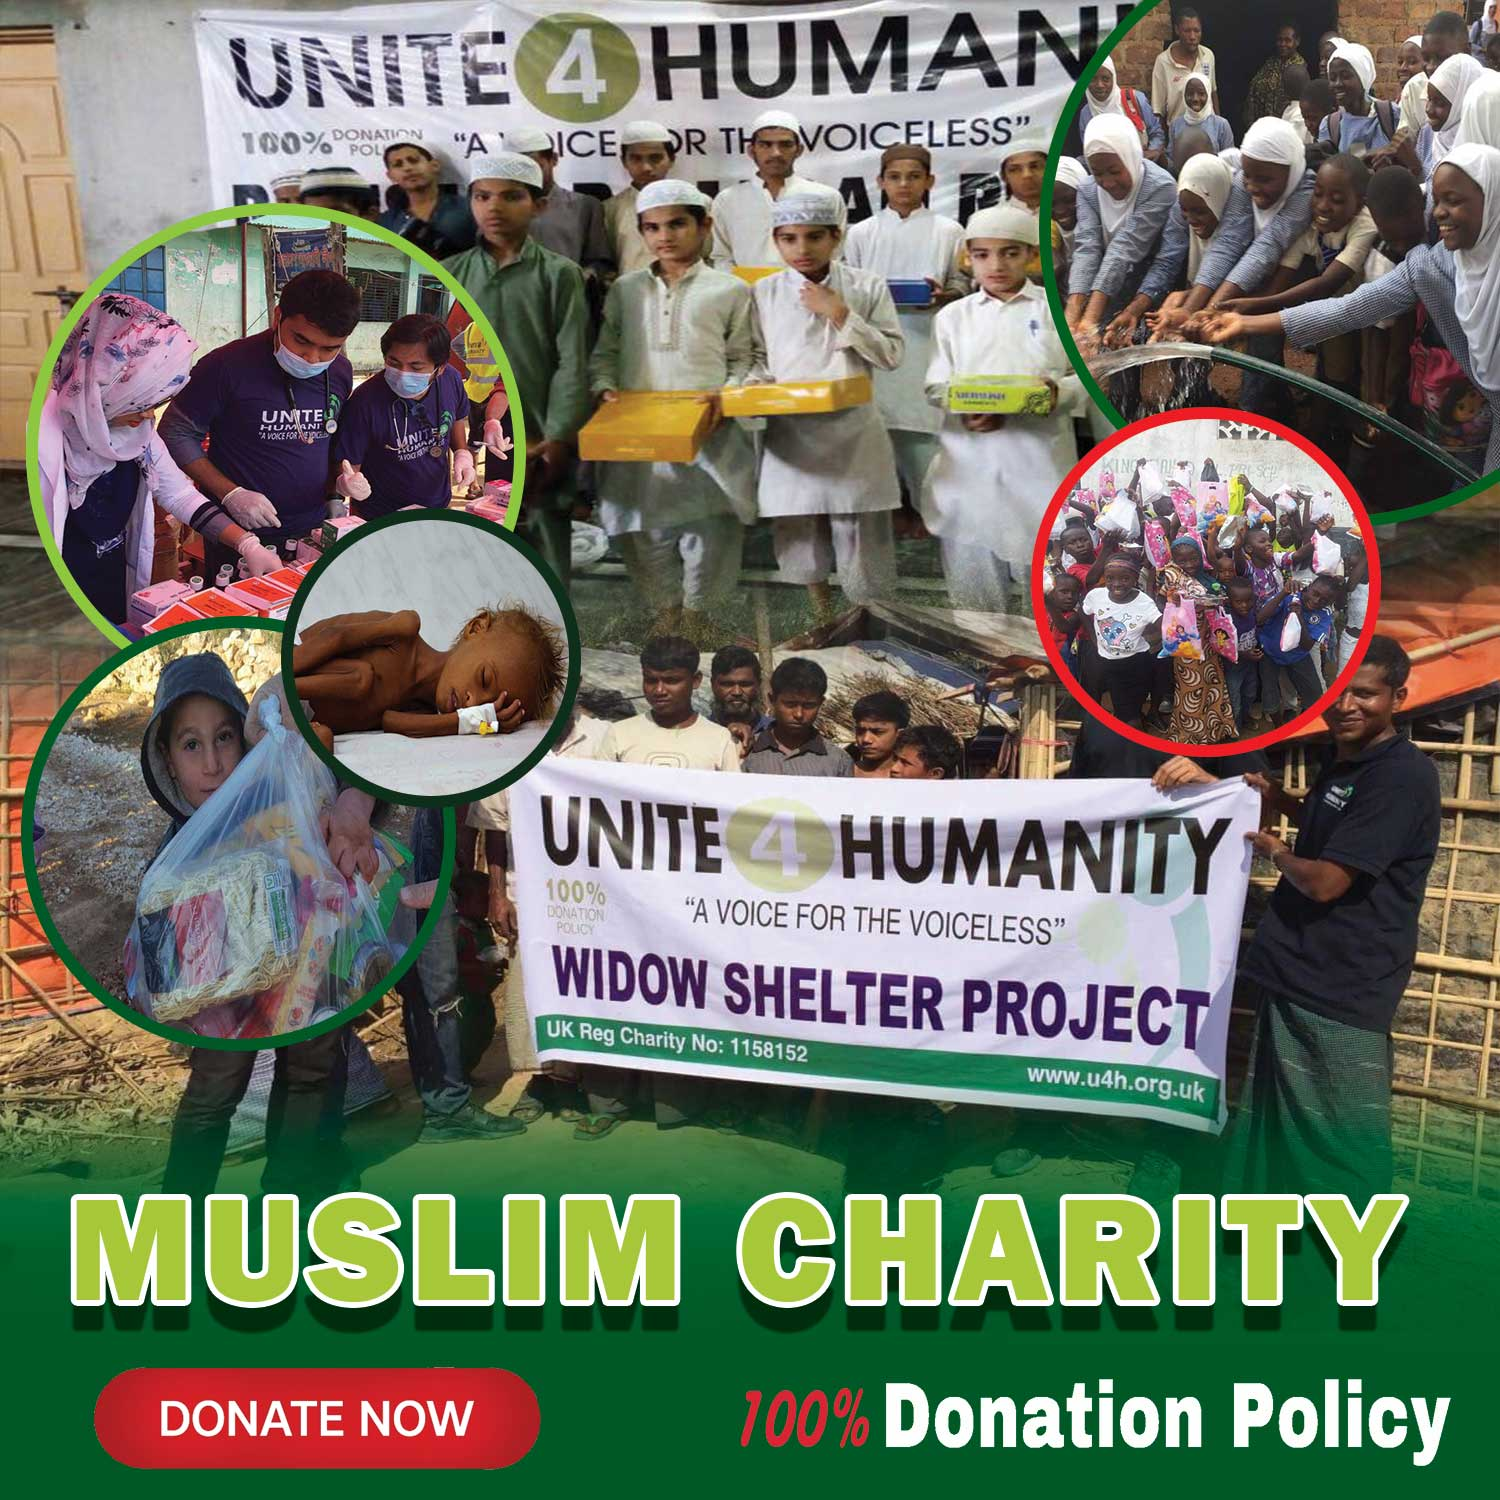 Unite 4 Humanity is a UK Islamic Charity